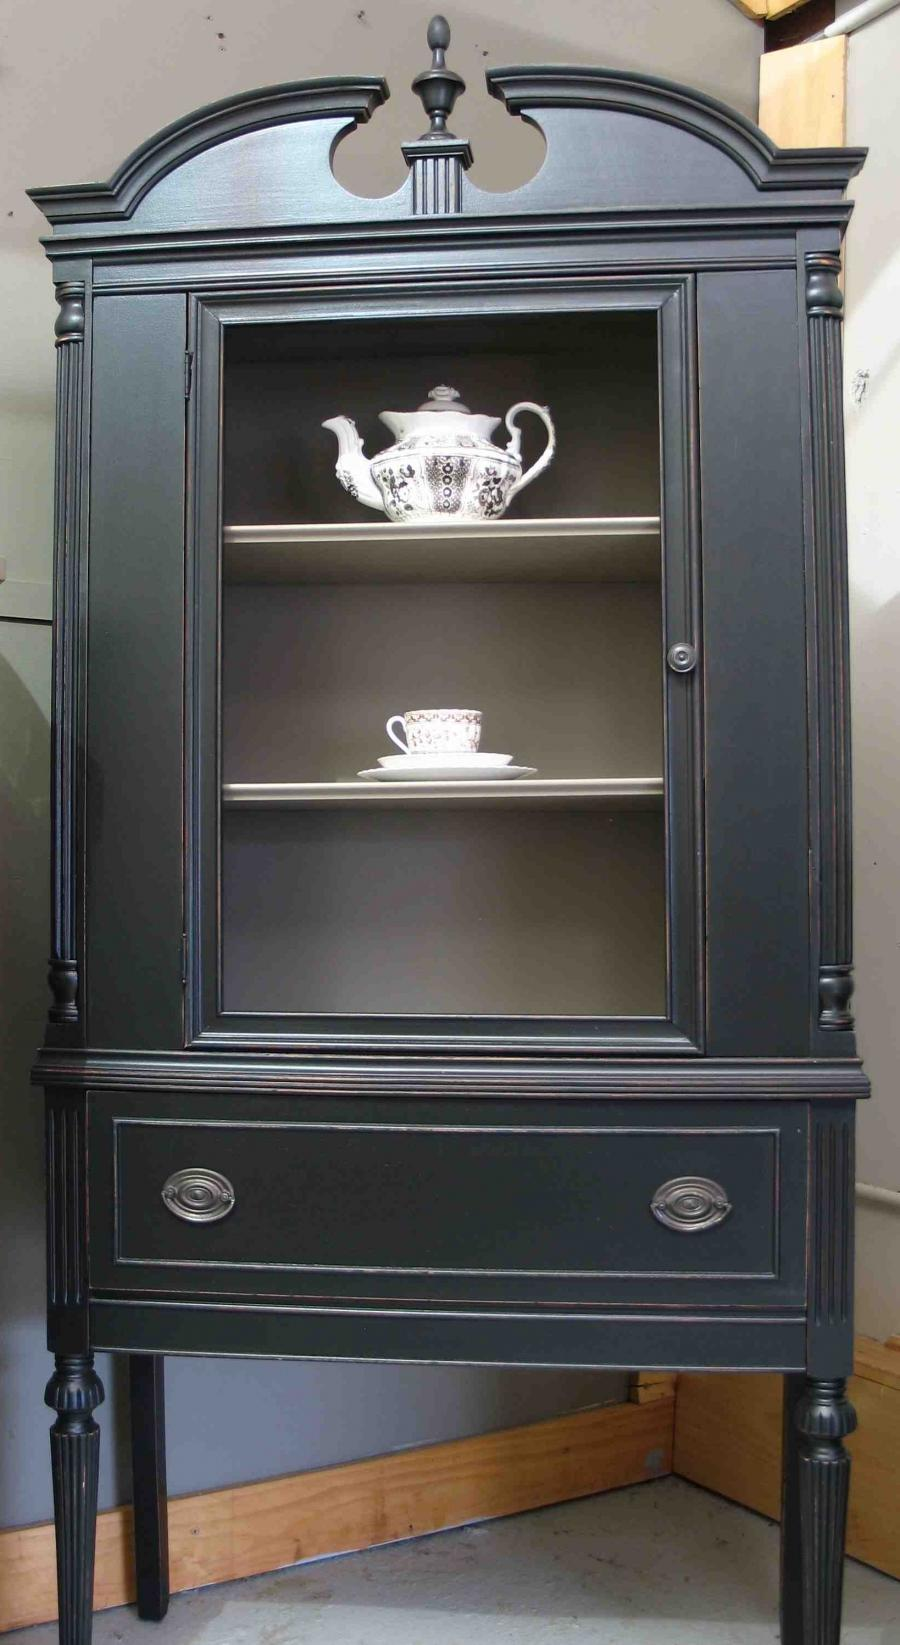 Dating cabinet photos-in-Outram